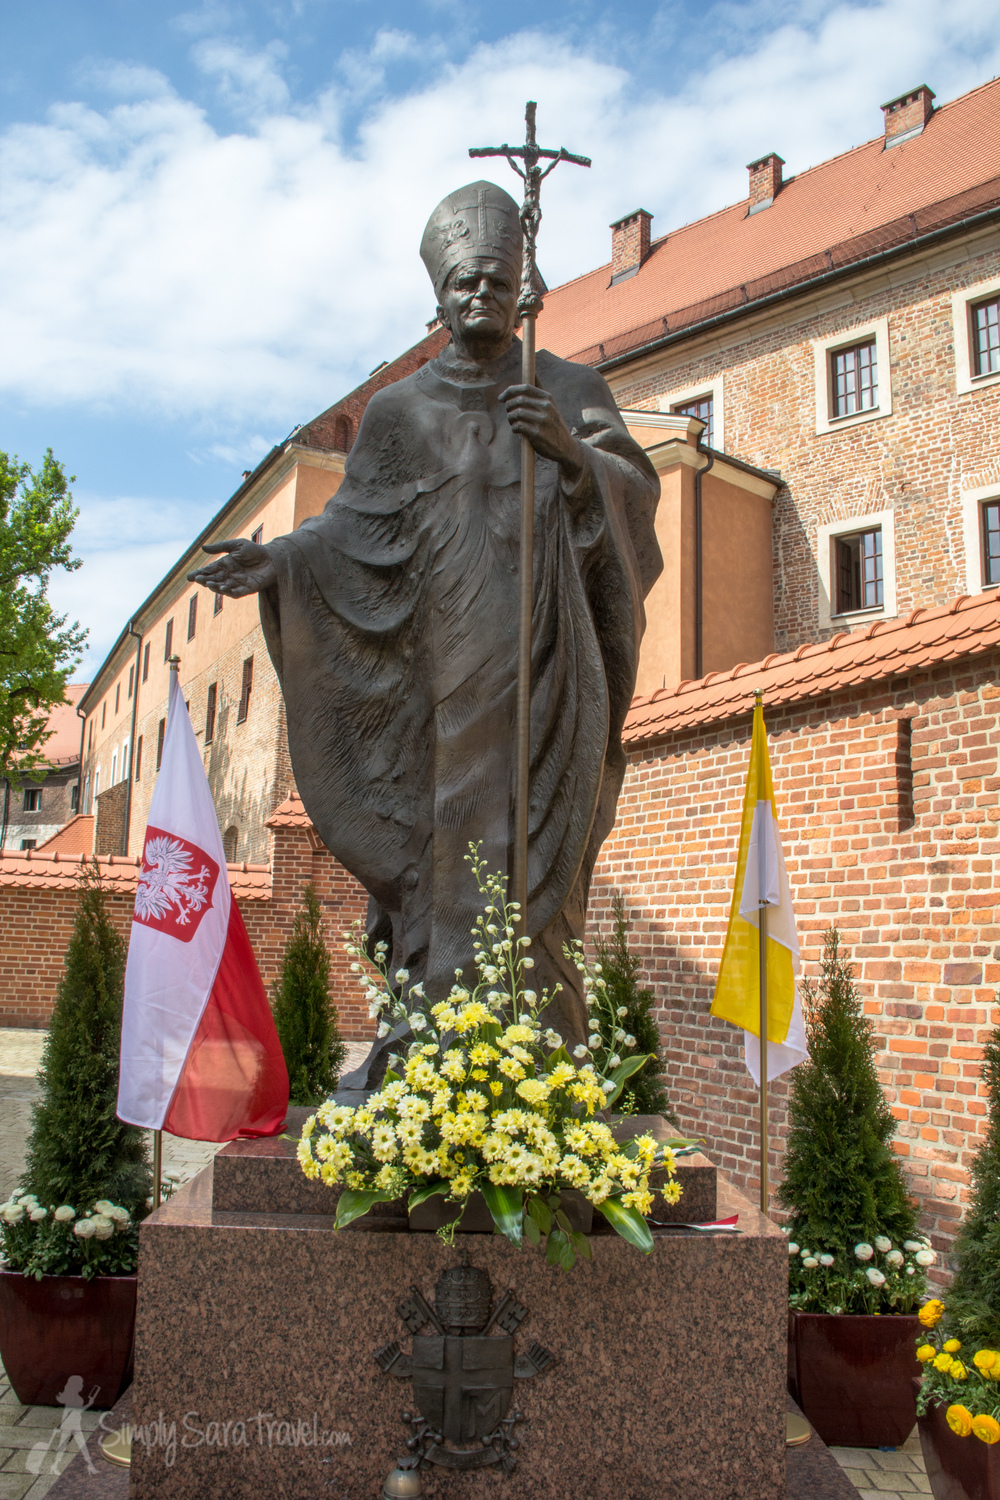 We happened to be in Krakow on the day Pope John Paul II was canonized by the Catholic Church. The late pope was certainly well-loved by the Polish people, but once we learned what significant event was occurring, it made more sense to us why we saw his face everywhere!